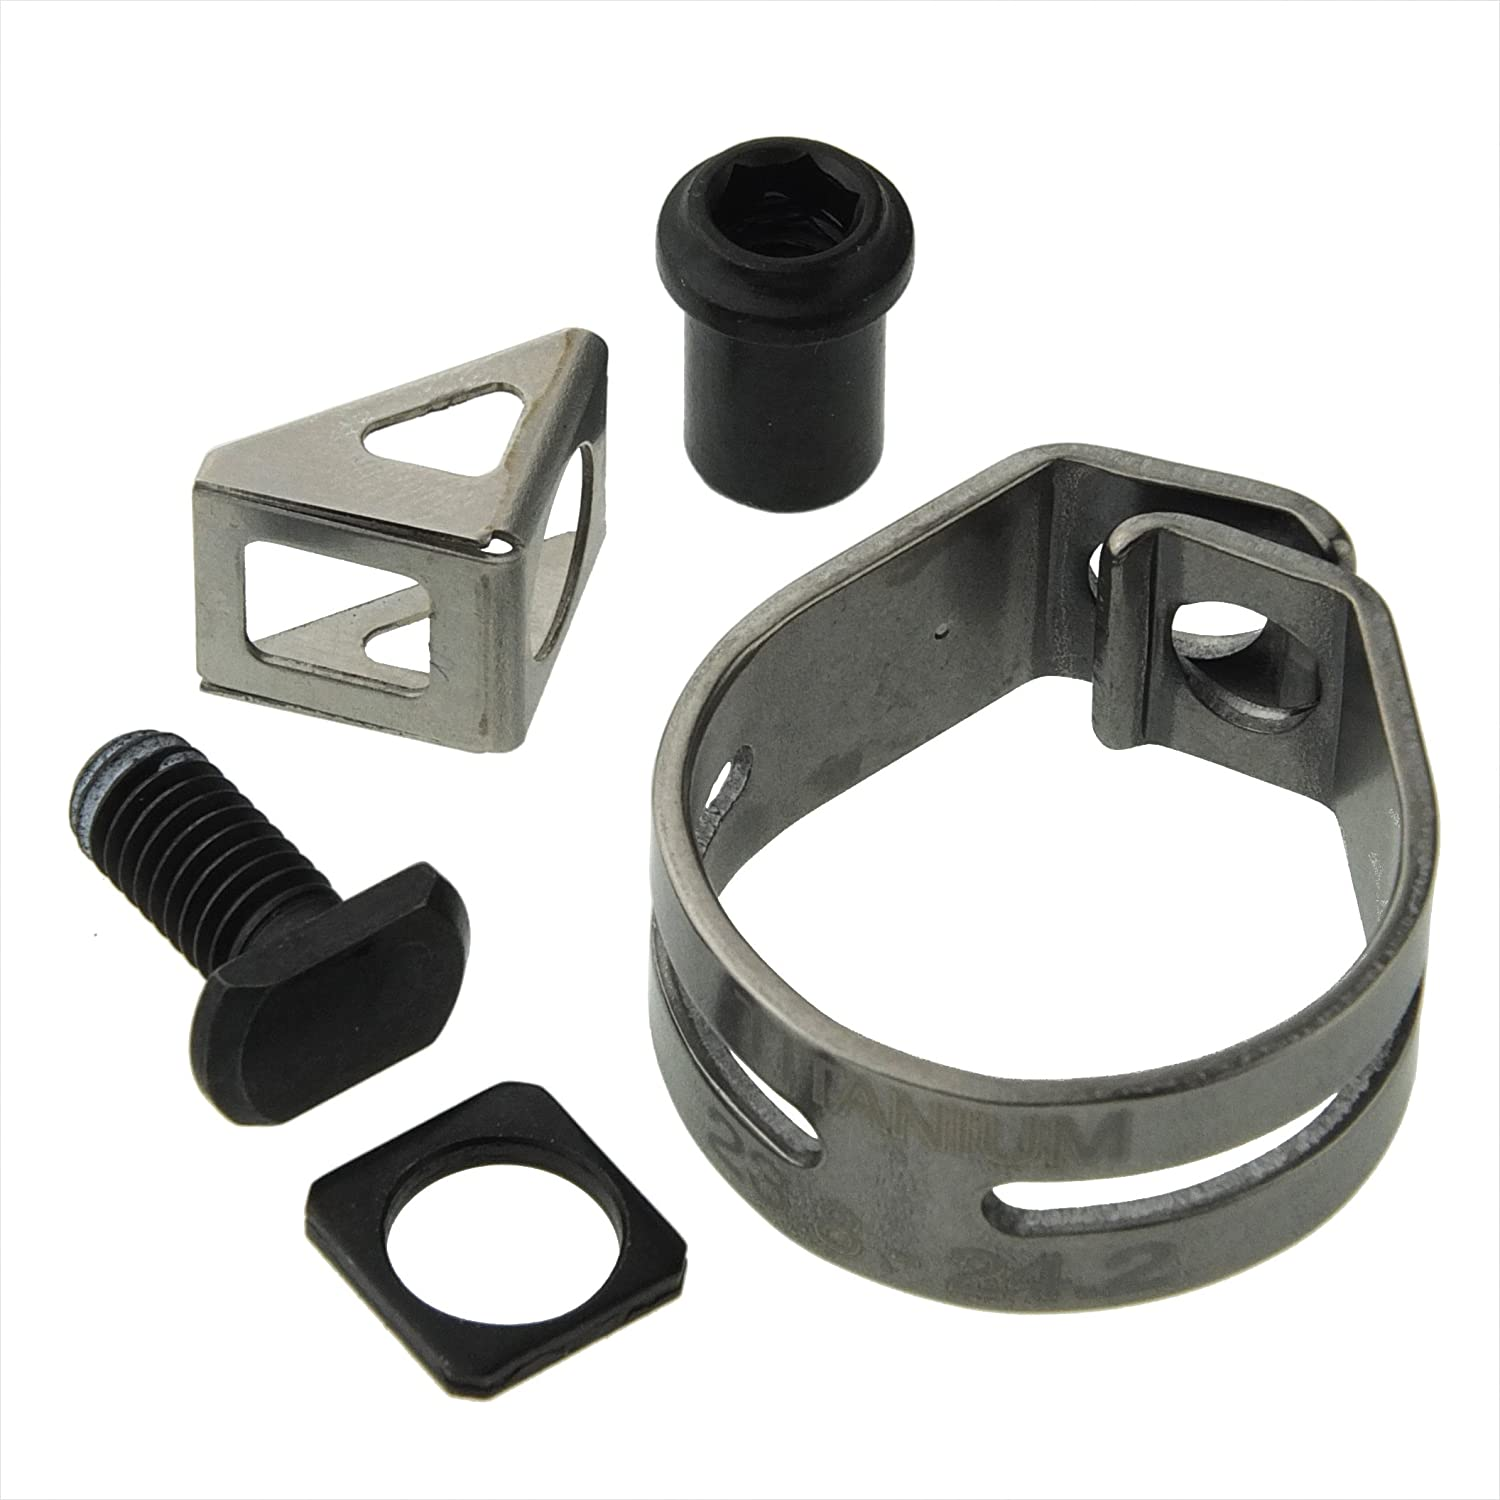 ST-7900 titanium clamp band 23.8 to 24.2 mm